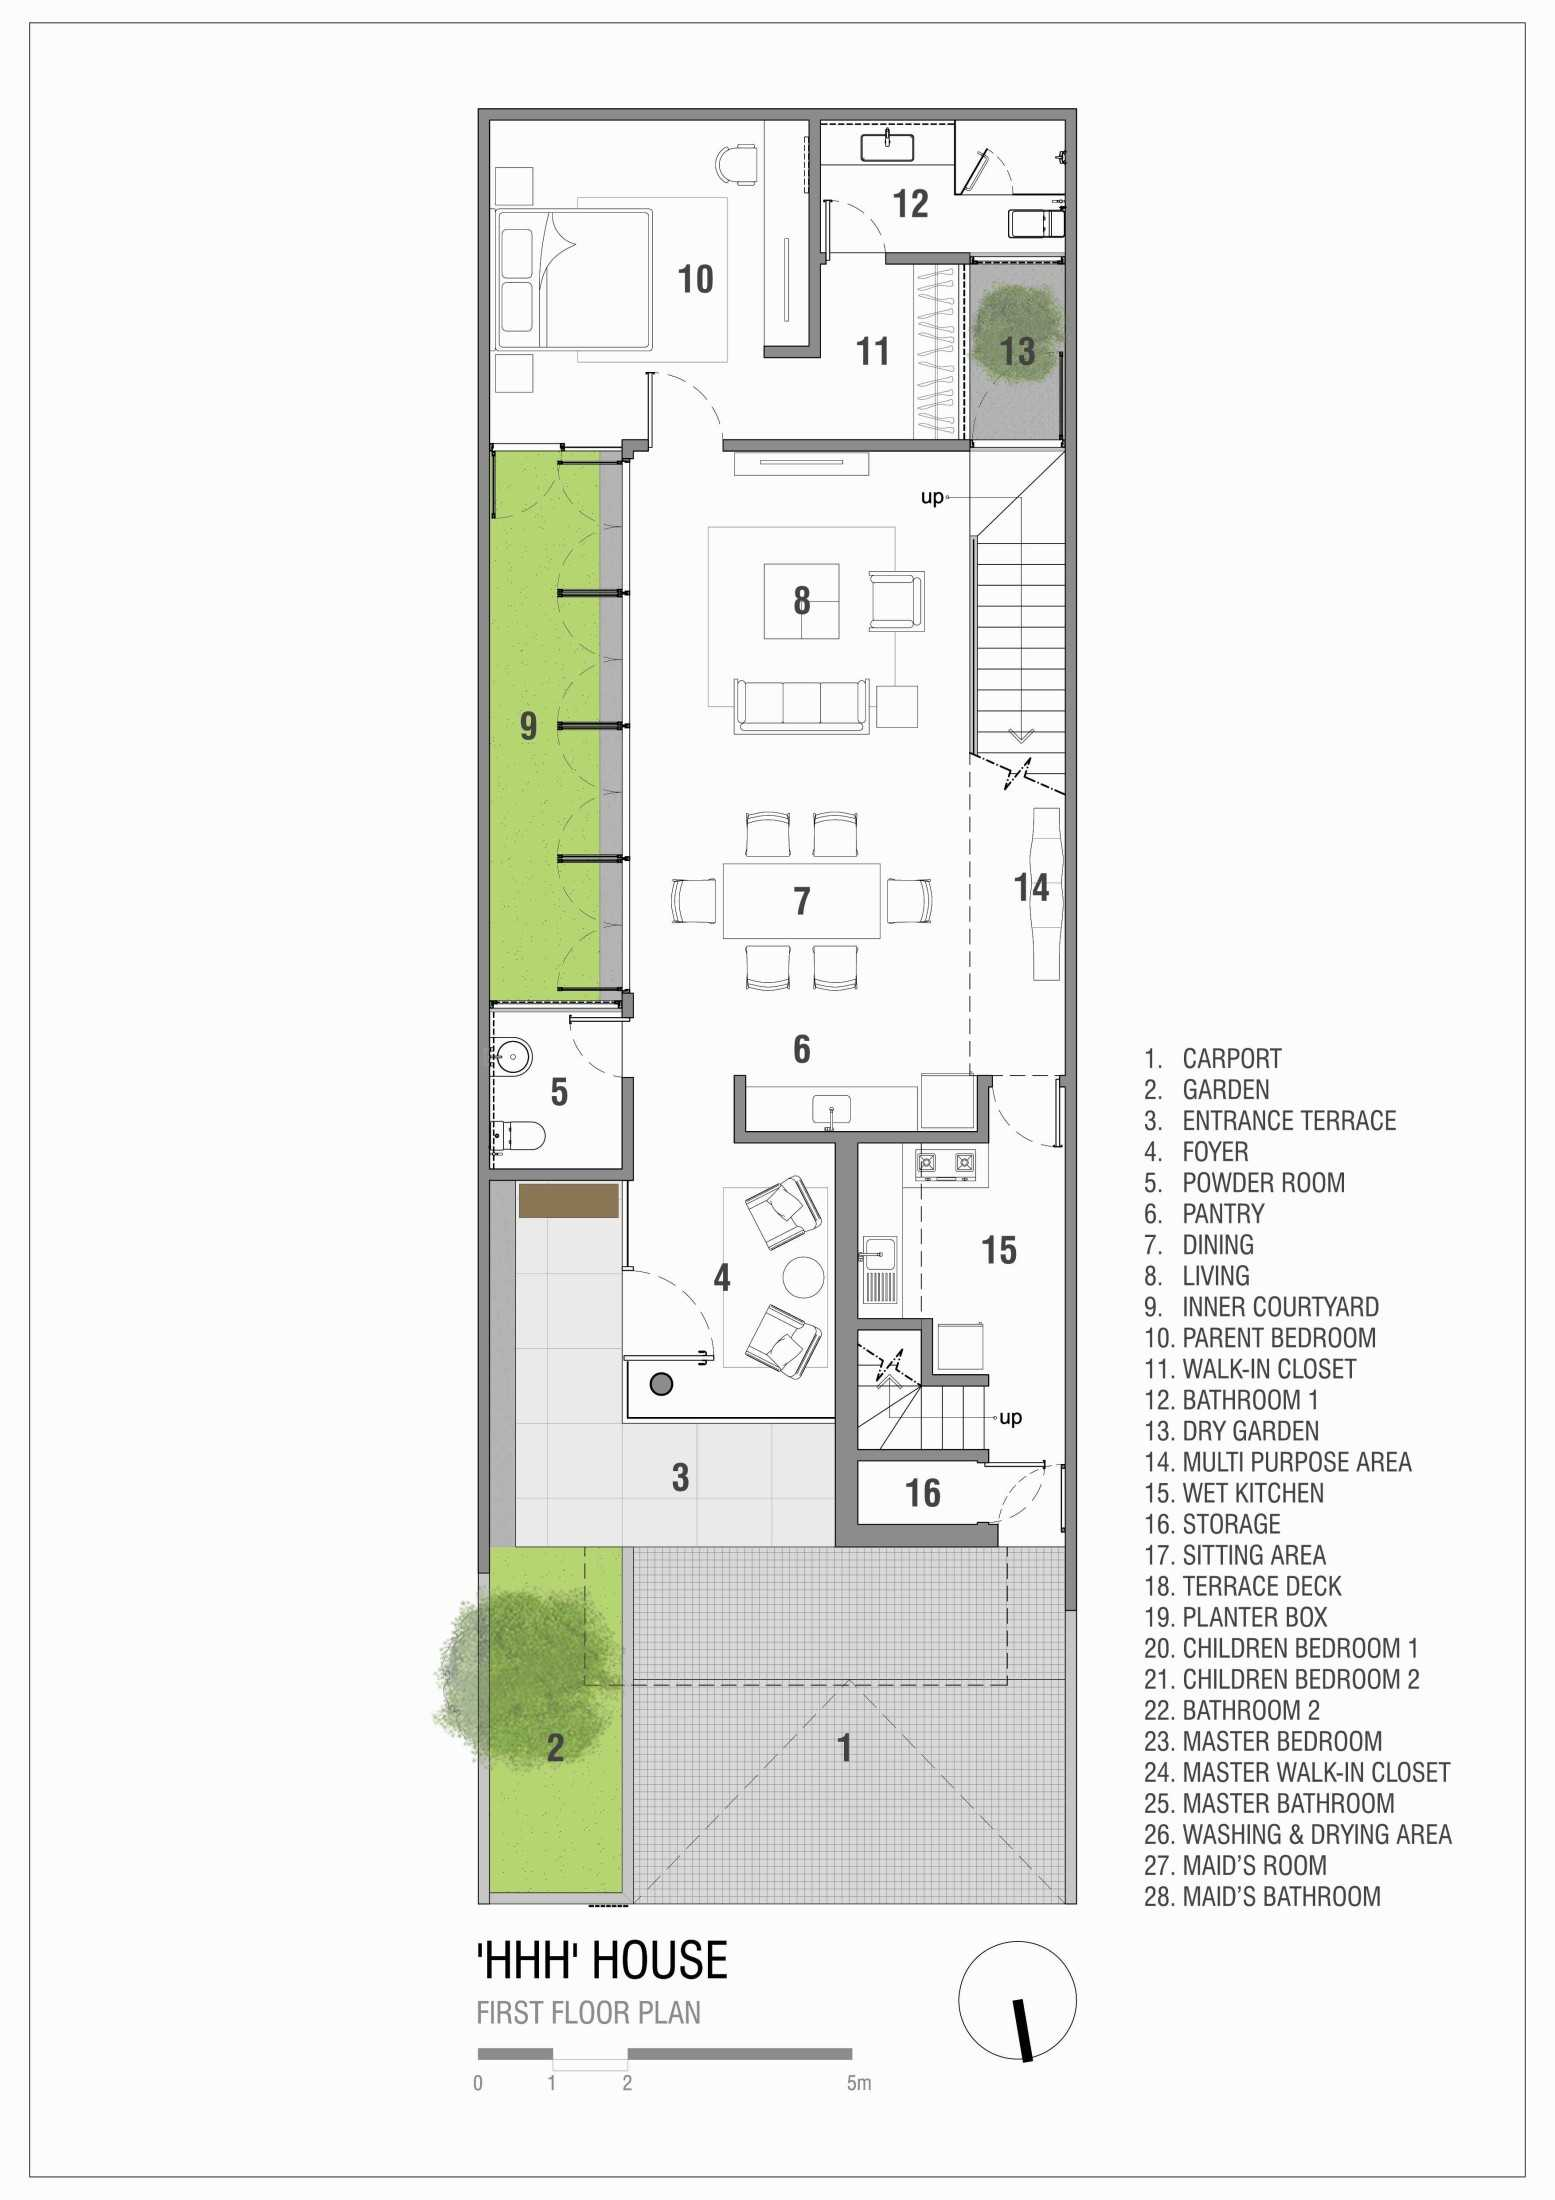 Simple Projects Architecture 'hhh' House Surabaya, Kota Sby, Jawa Timur, Indonesia  Simple-Projects-Architecture-Hhh-House  75095